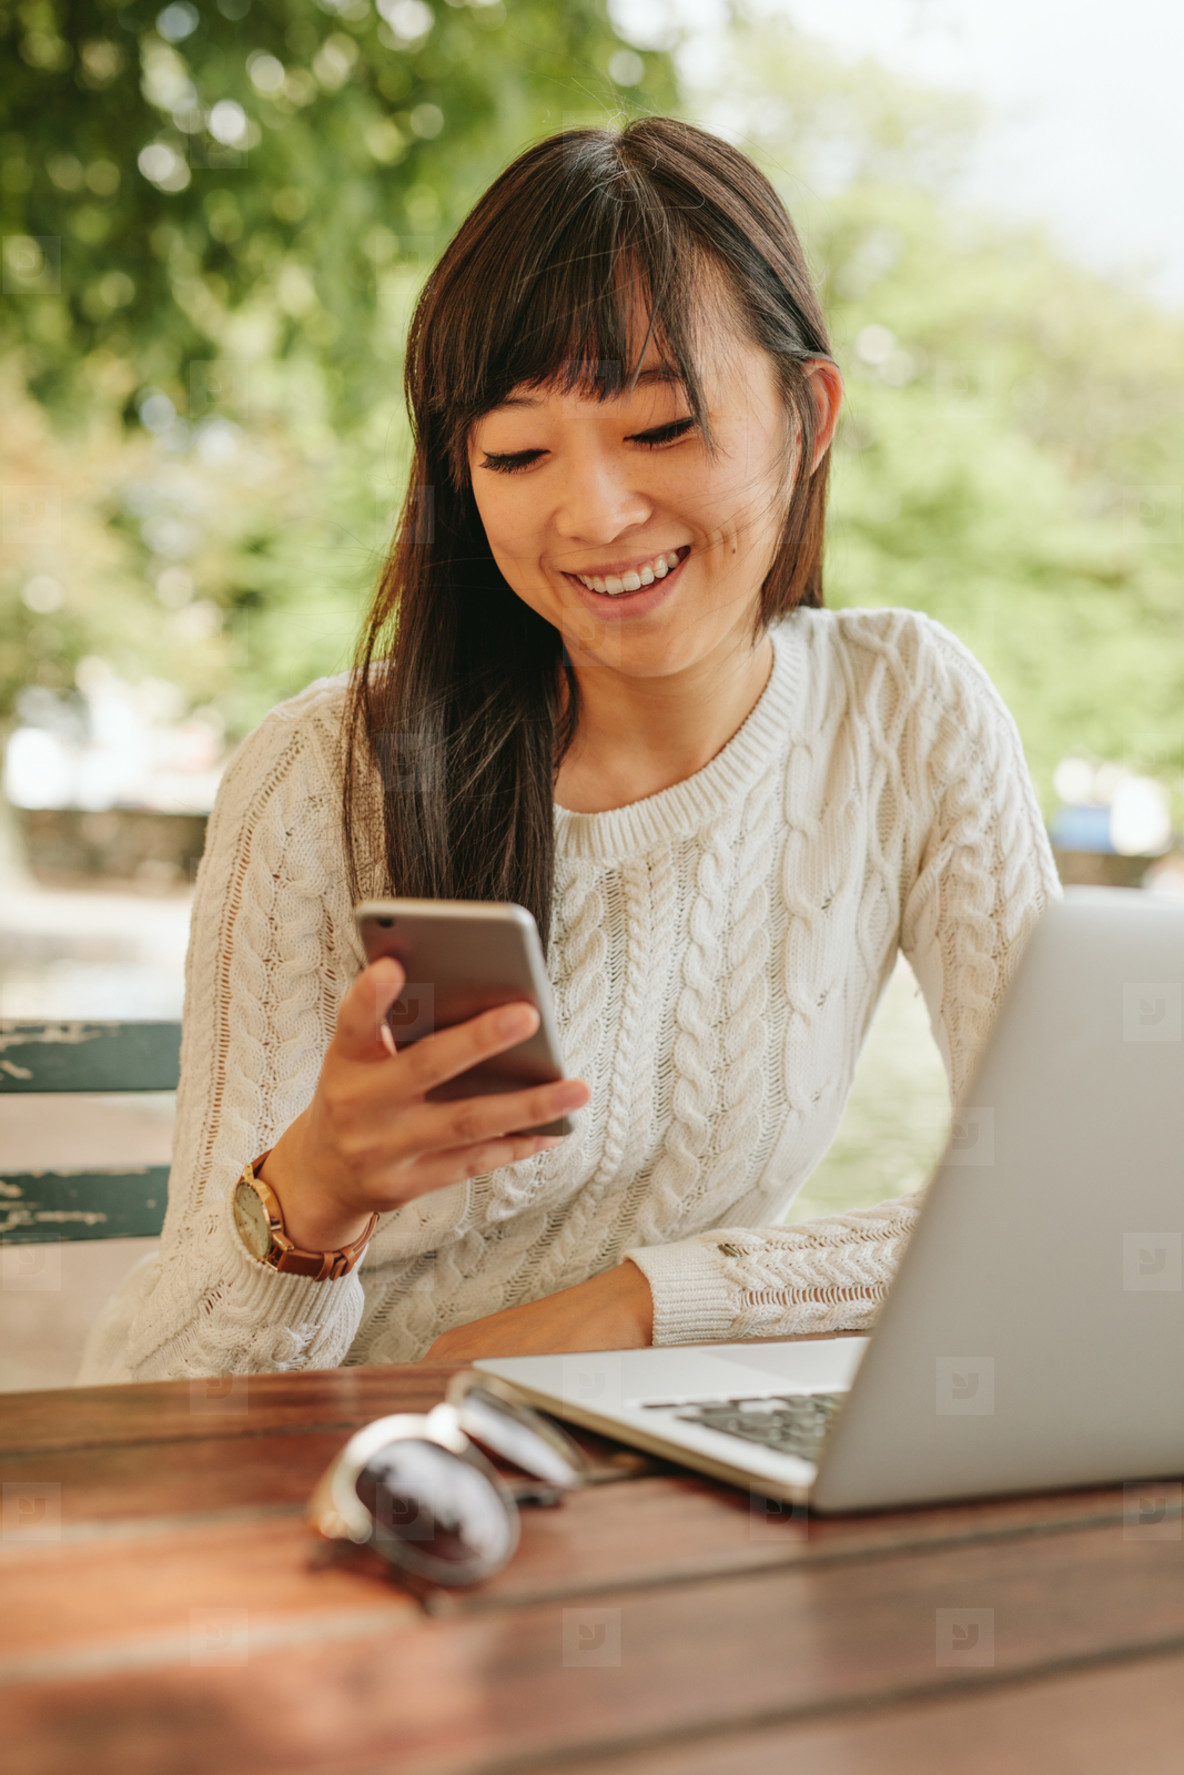 Smiling woman using cellphone at coffee shop